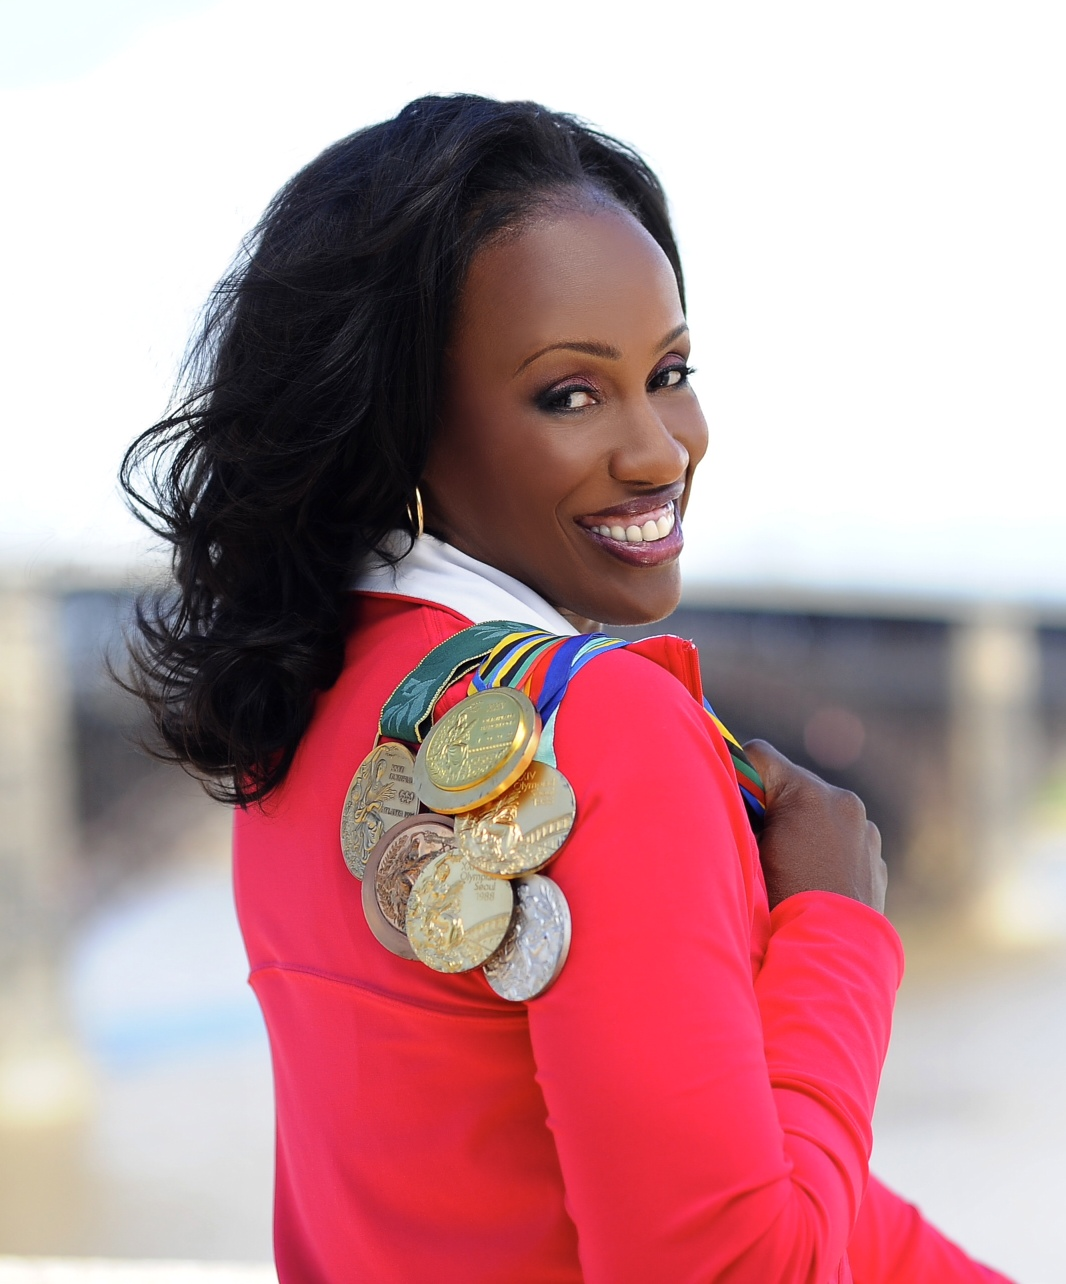 Jackie Joyner-Kersee 6 Olympic medals in athletics Jackie Joyner-Kersee 6 Olympic medals in athletics new picture